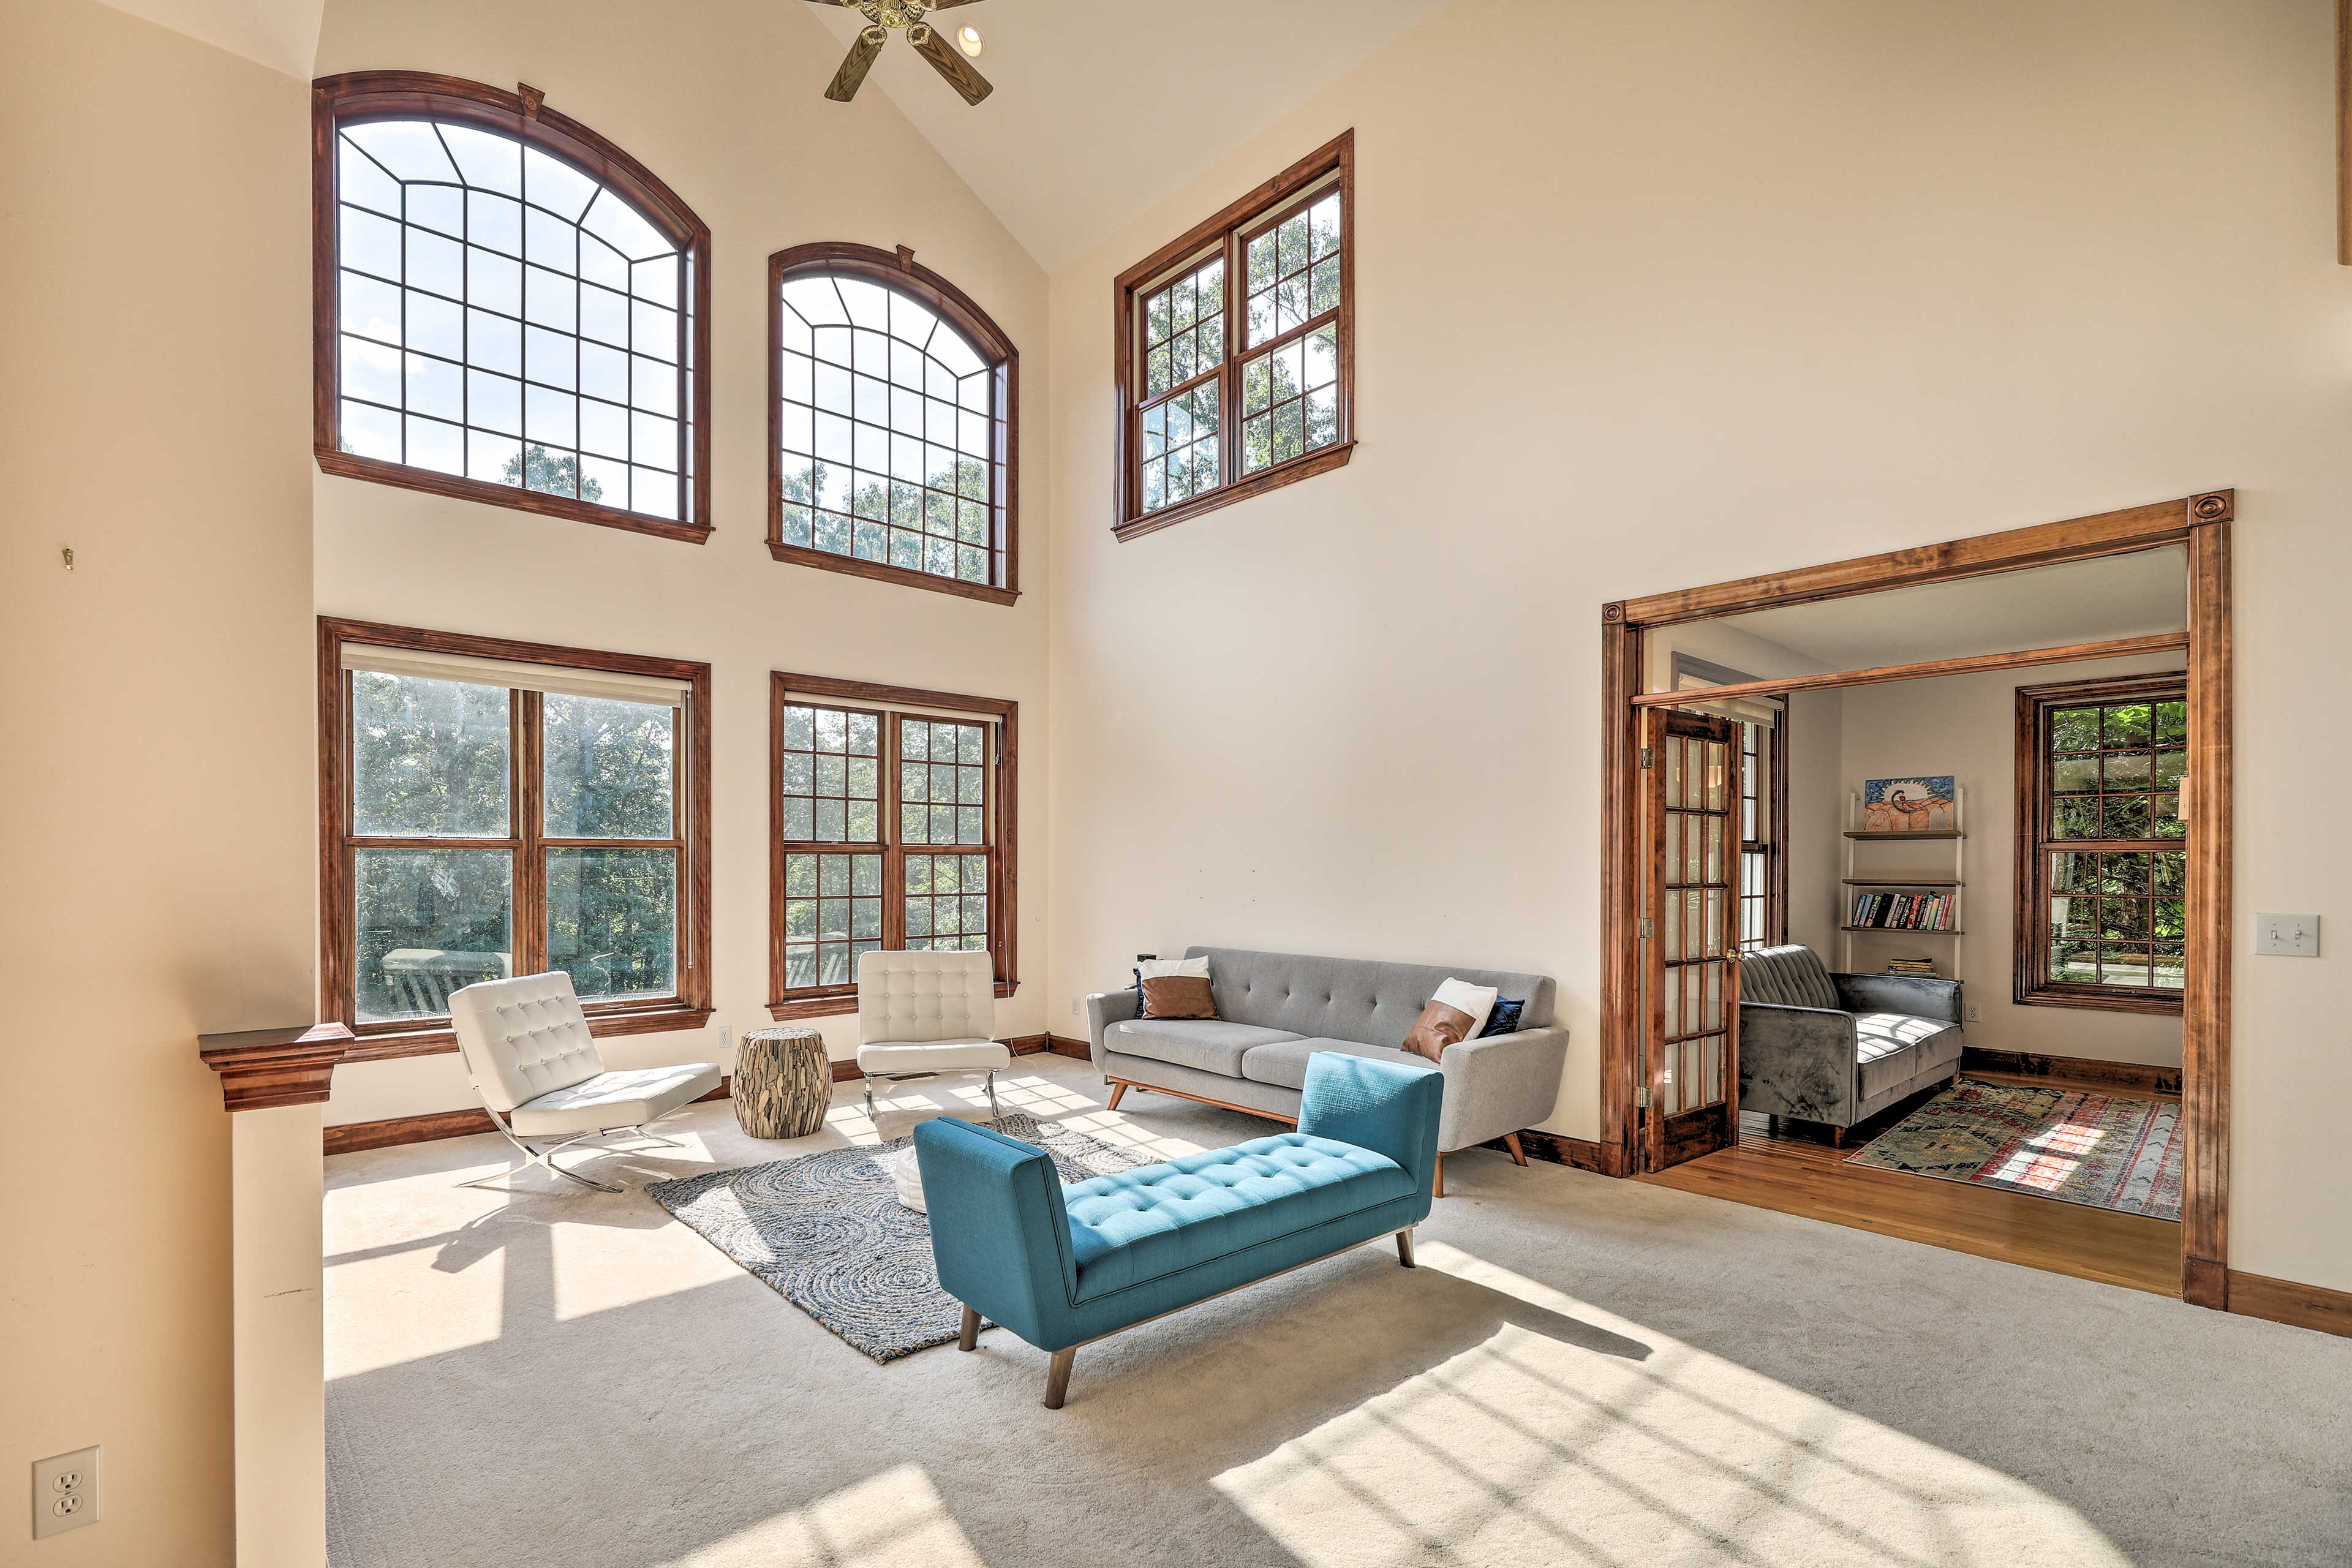 The home's many living spaces are illuminated with natural light.